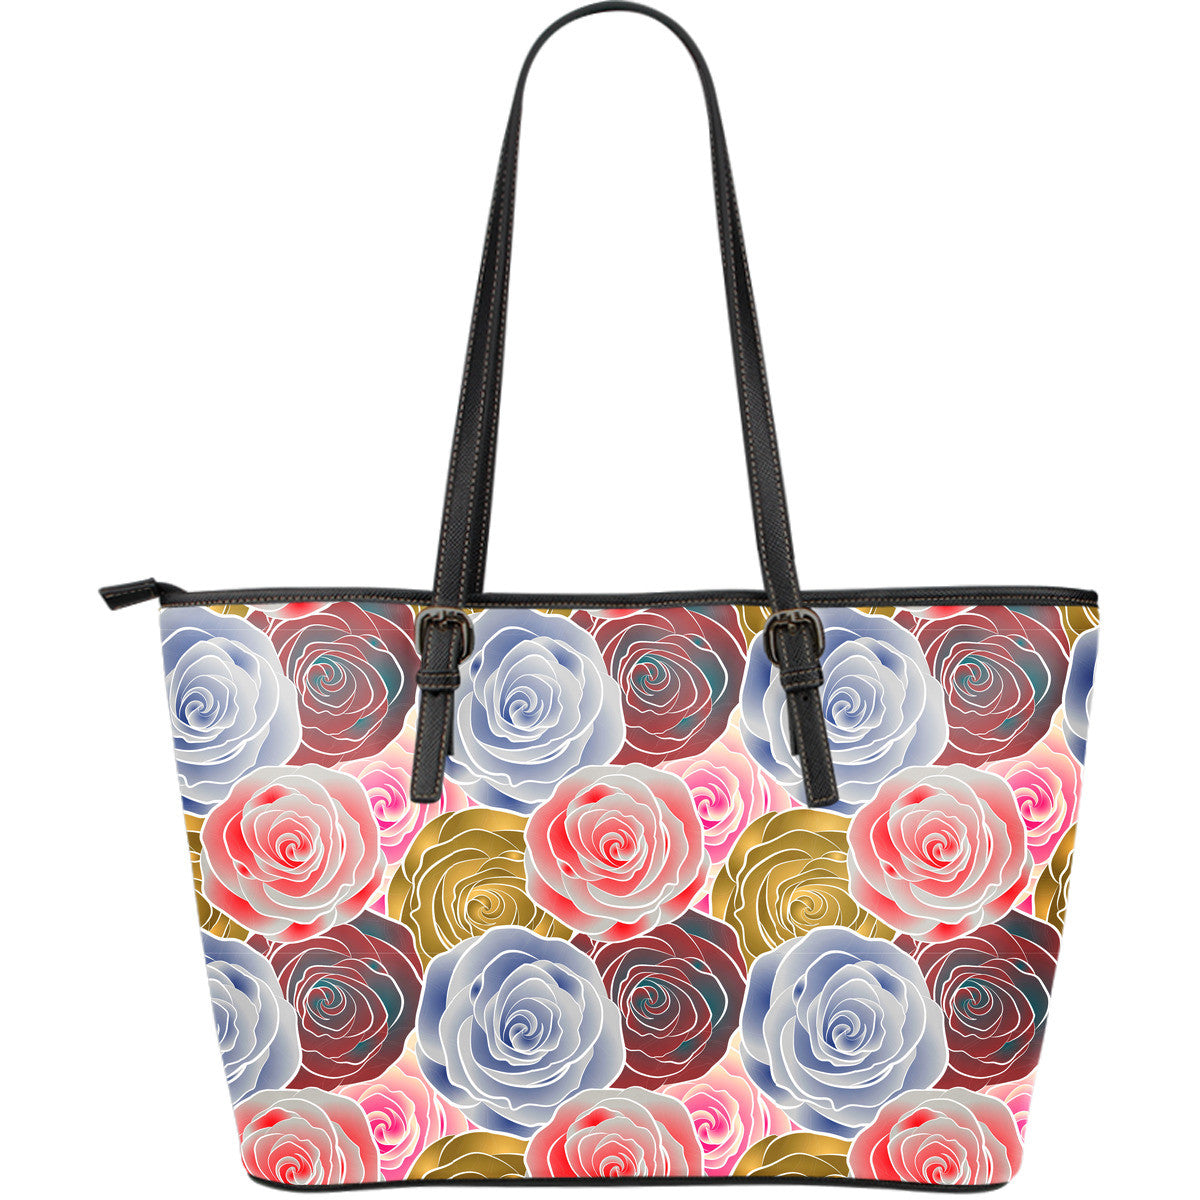 Rosey Large Leather Tote Bag